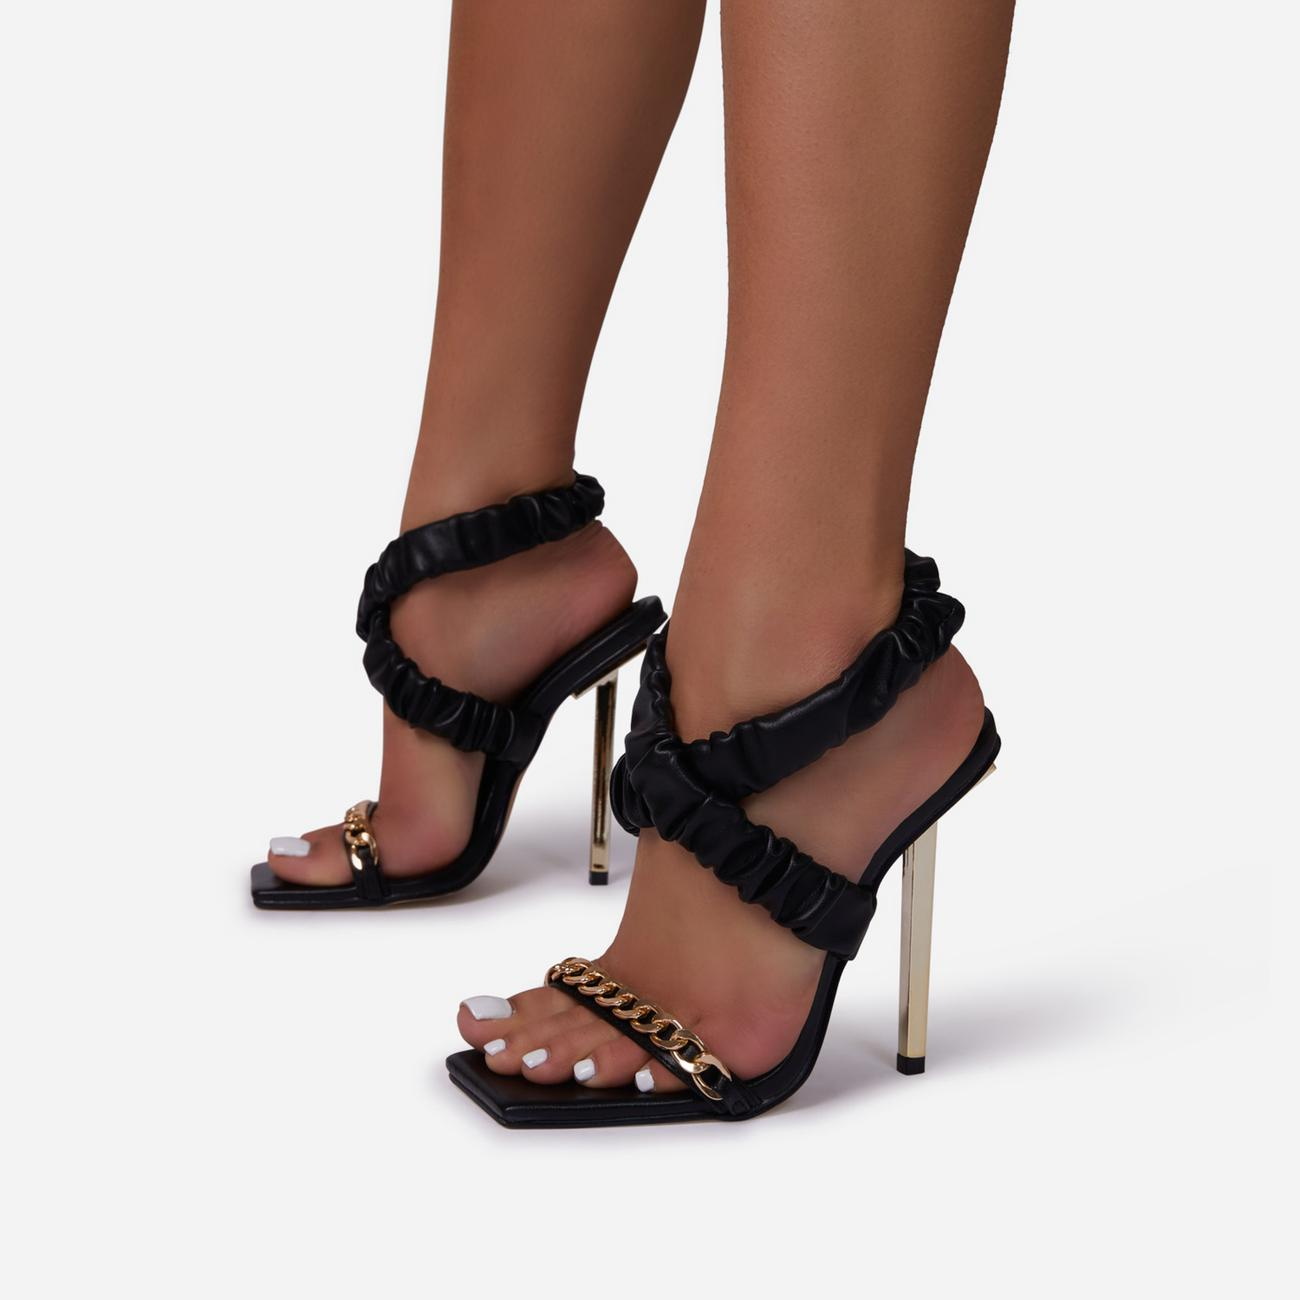 Caught-Up Chain Detail Ruched Strap Square Toe Metallic Heel In Black Faux Leather Image 1